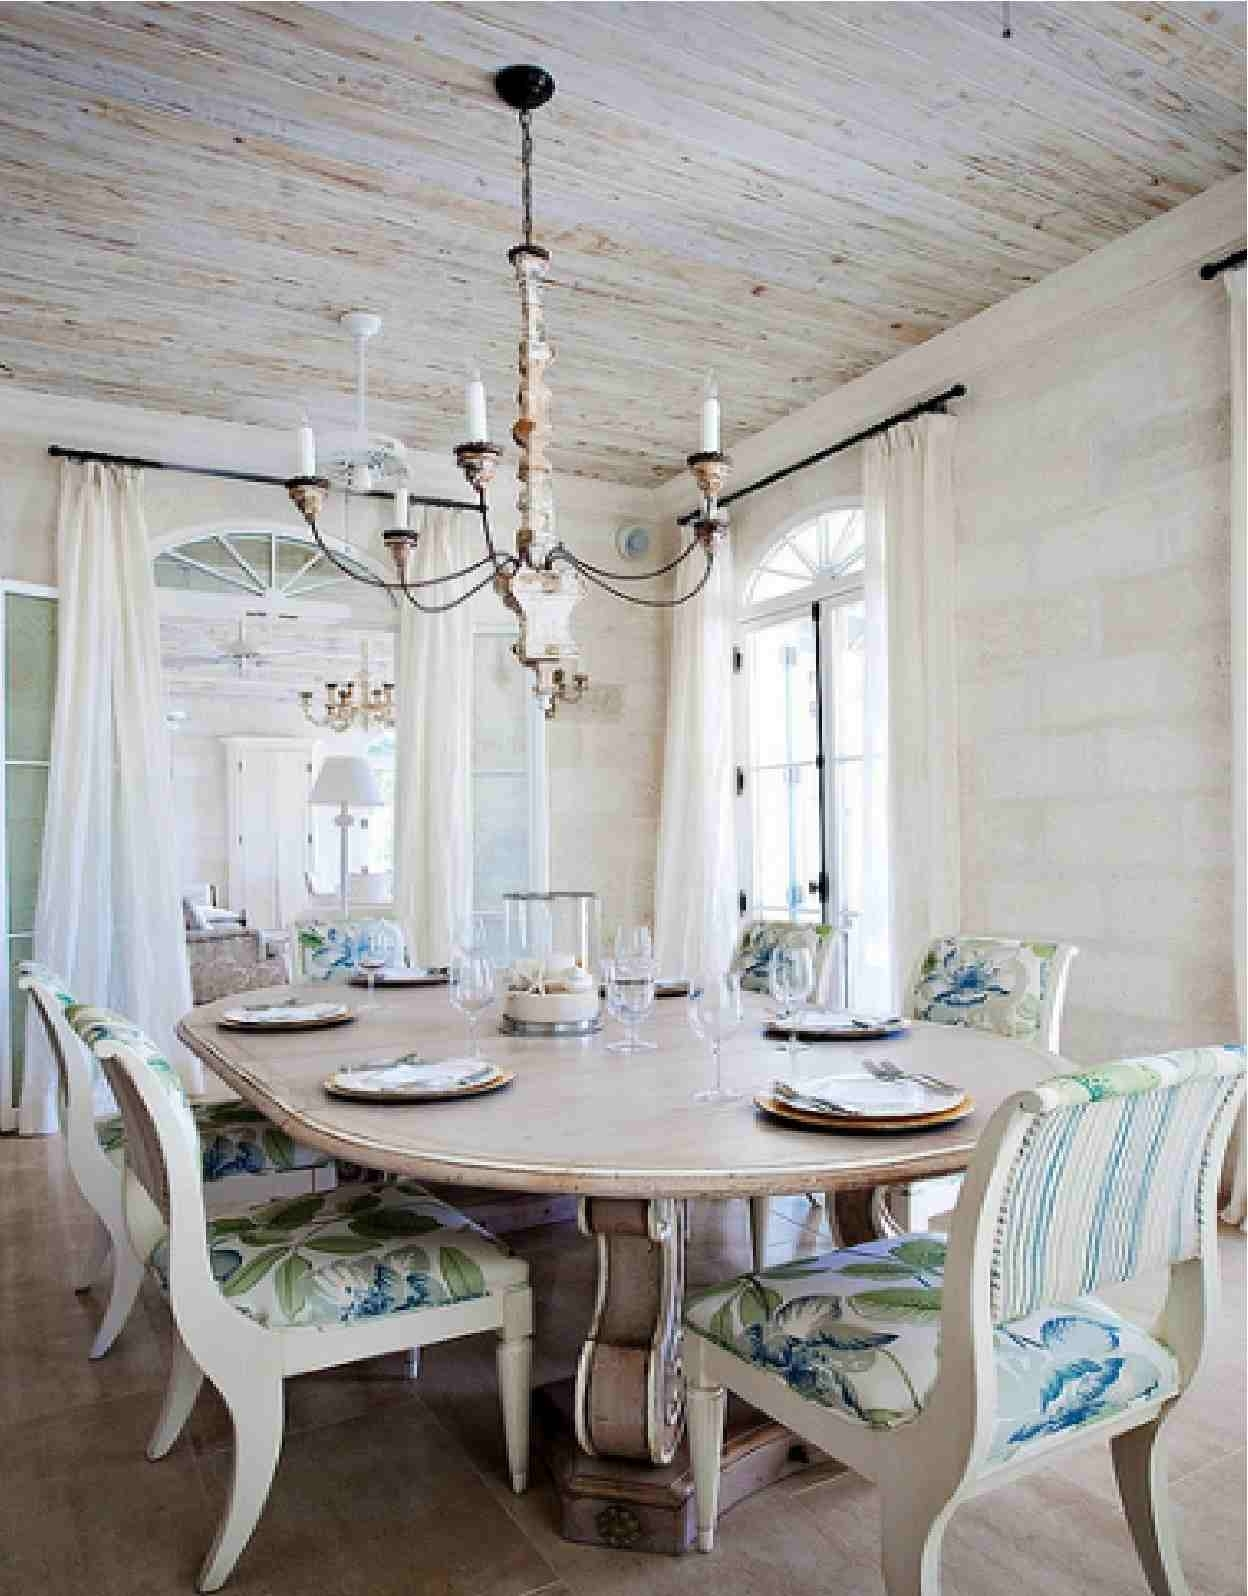 Country Chic Chandelier Regarding Trendy Chandeliers Design Marvelous Lighting Pendulum Lights Rustic Rustic (View 20 of 20)